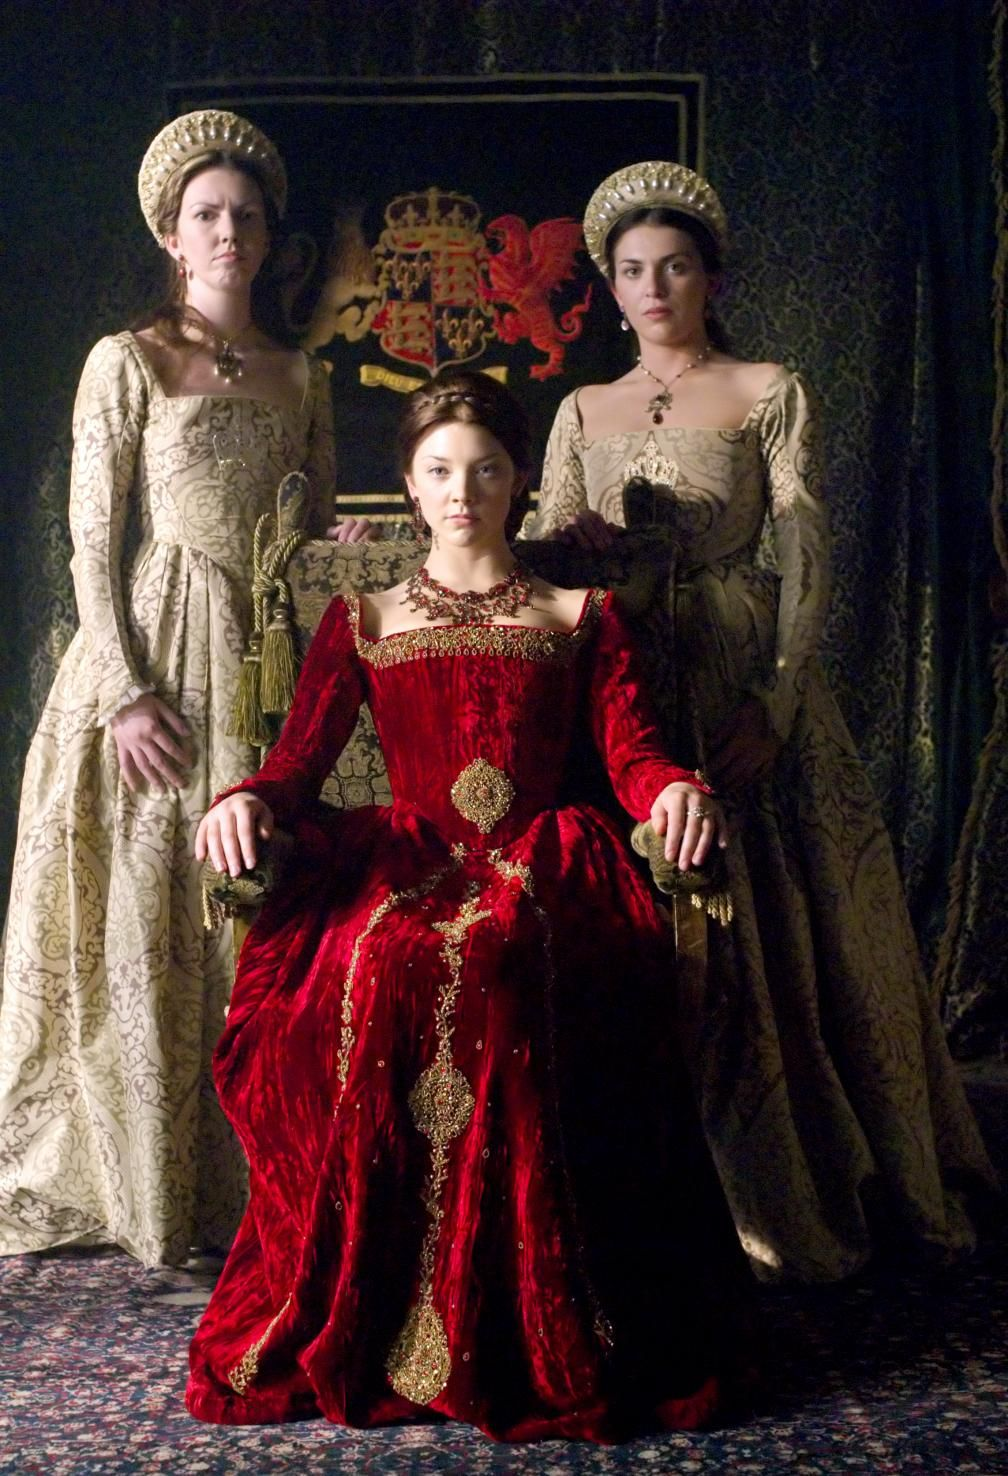 Green dress on pale skin  Queen Anne Boleyn and her Ladies in waiting  Costumes  Pinterest